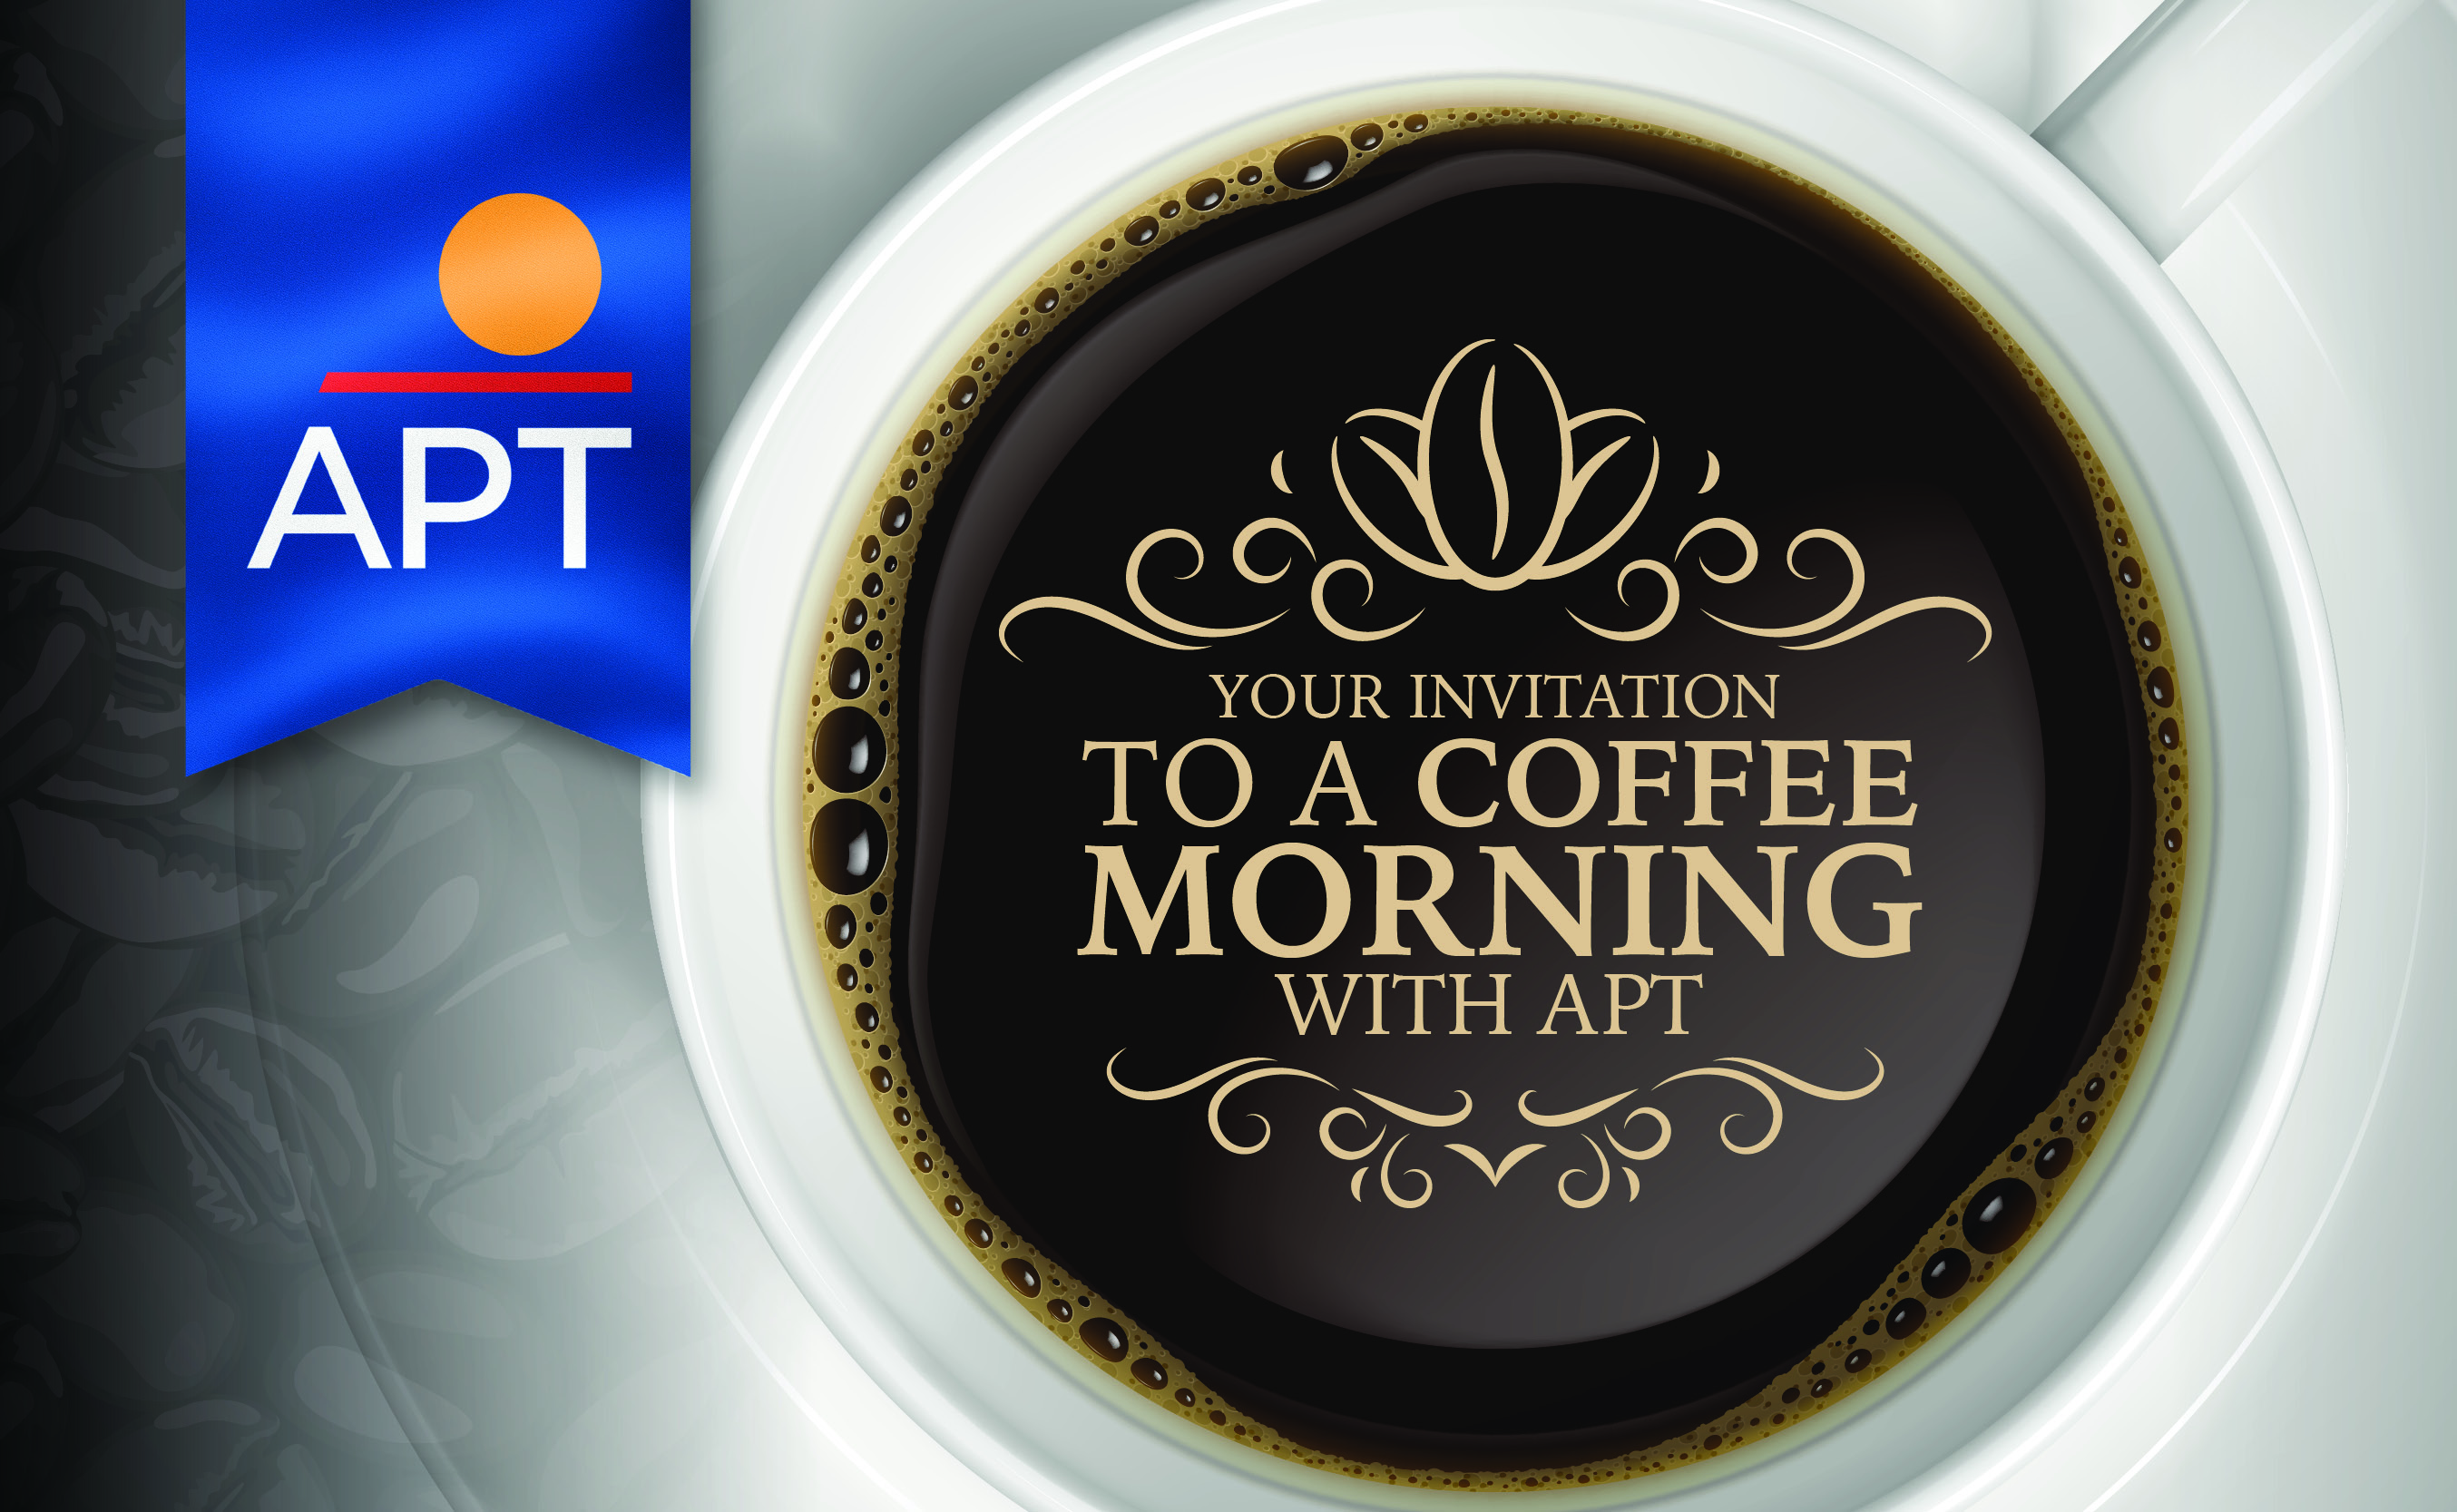 APT to host coffee mornings for homeworkers